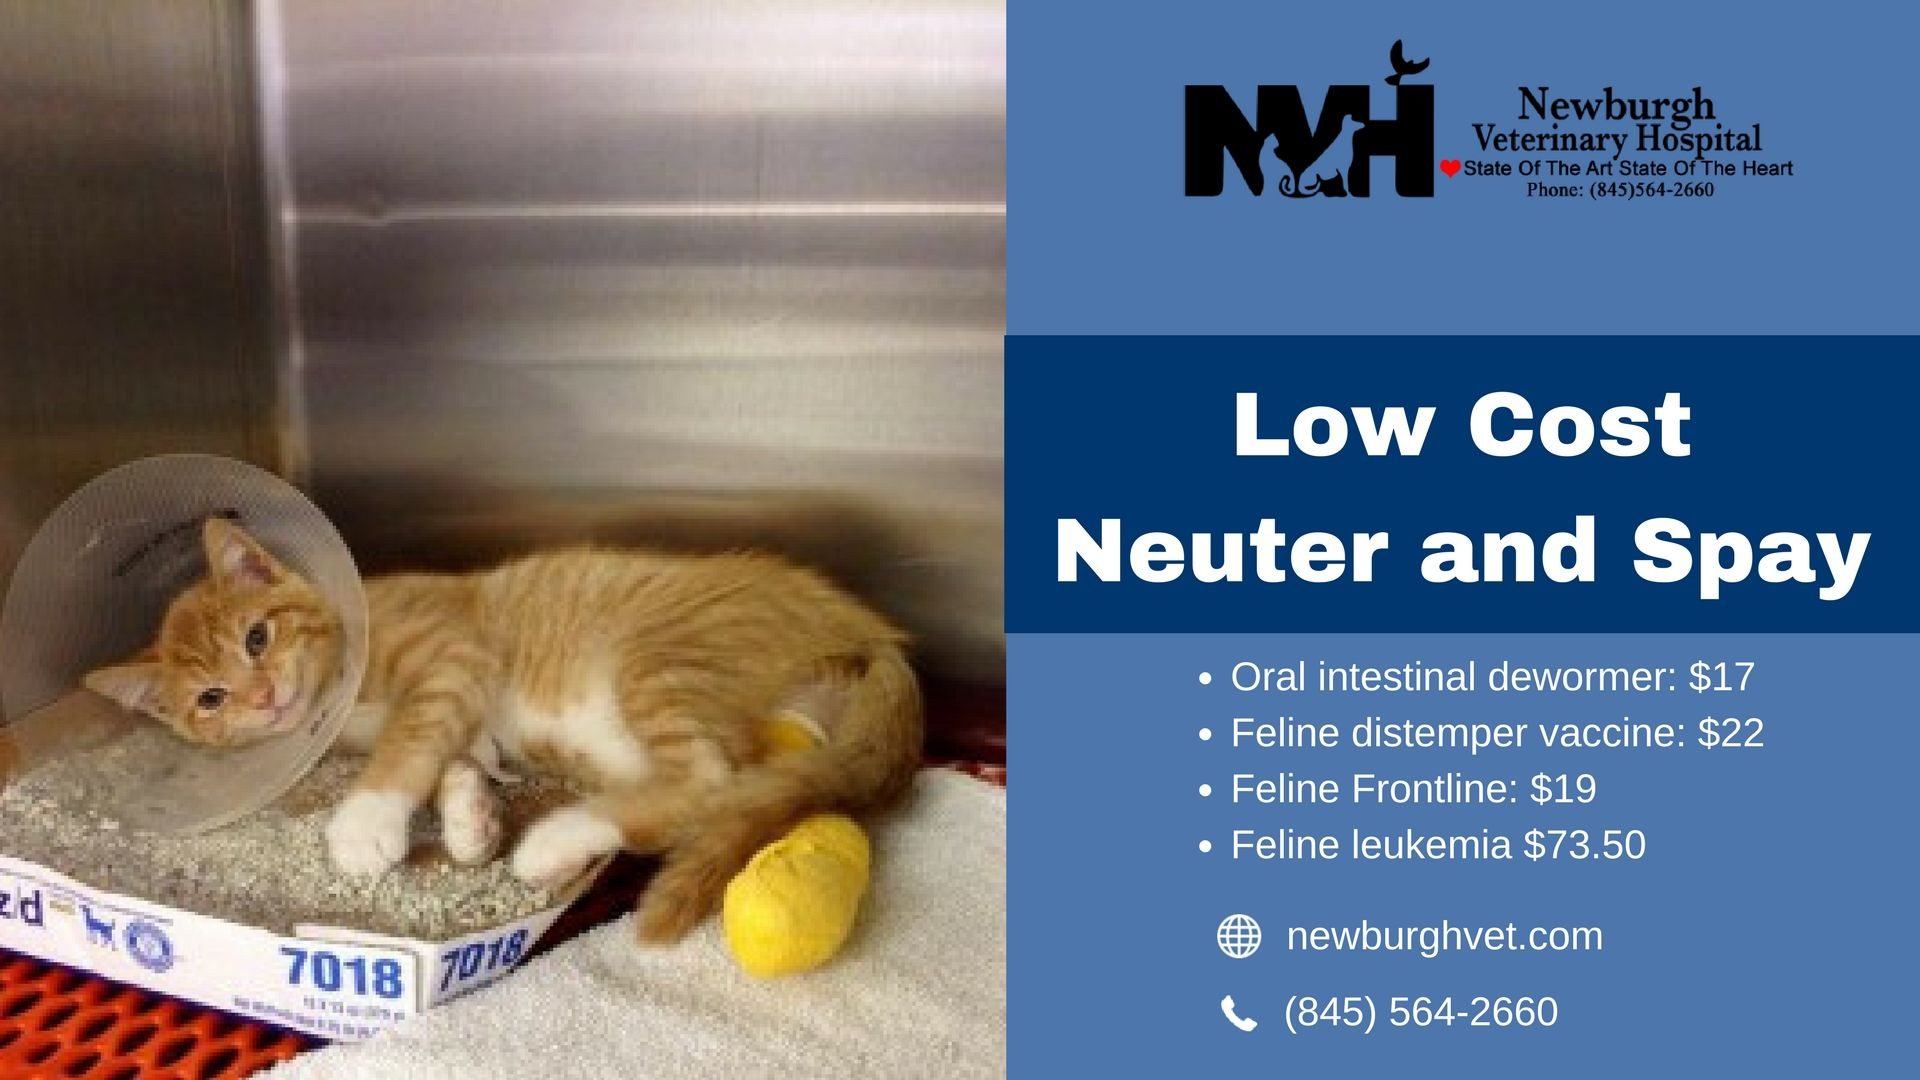 Newburgh Veterinary Hospital provides best quality and low